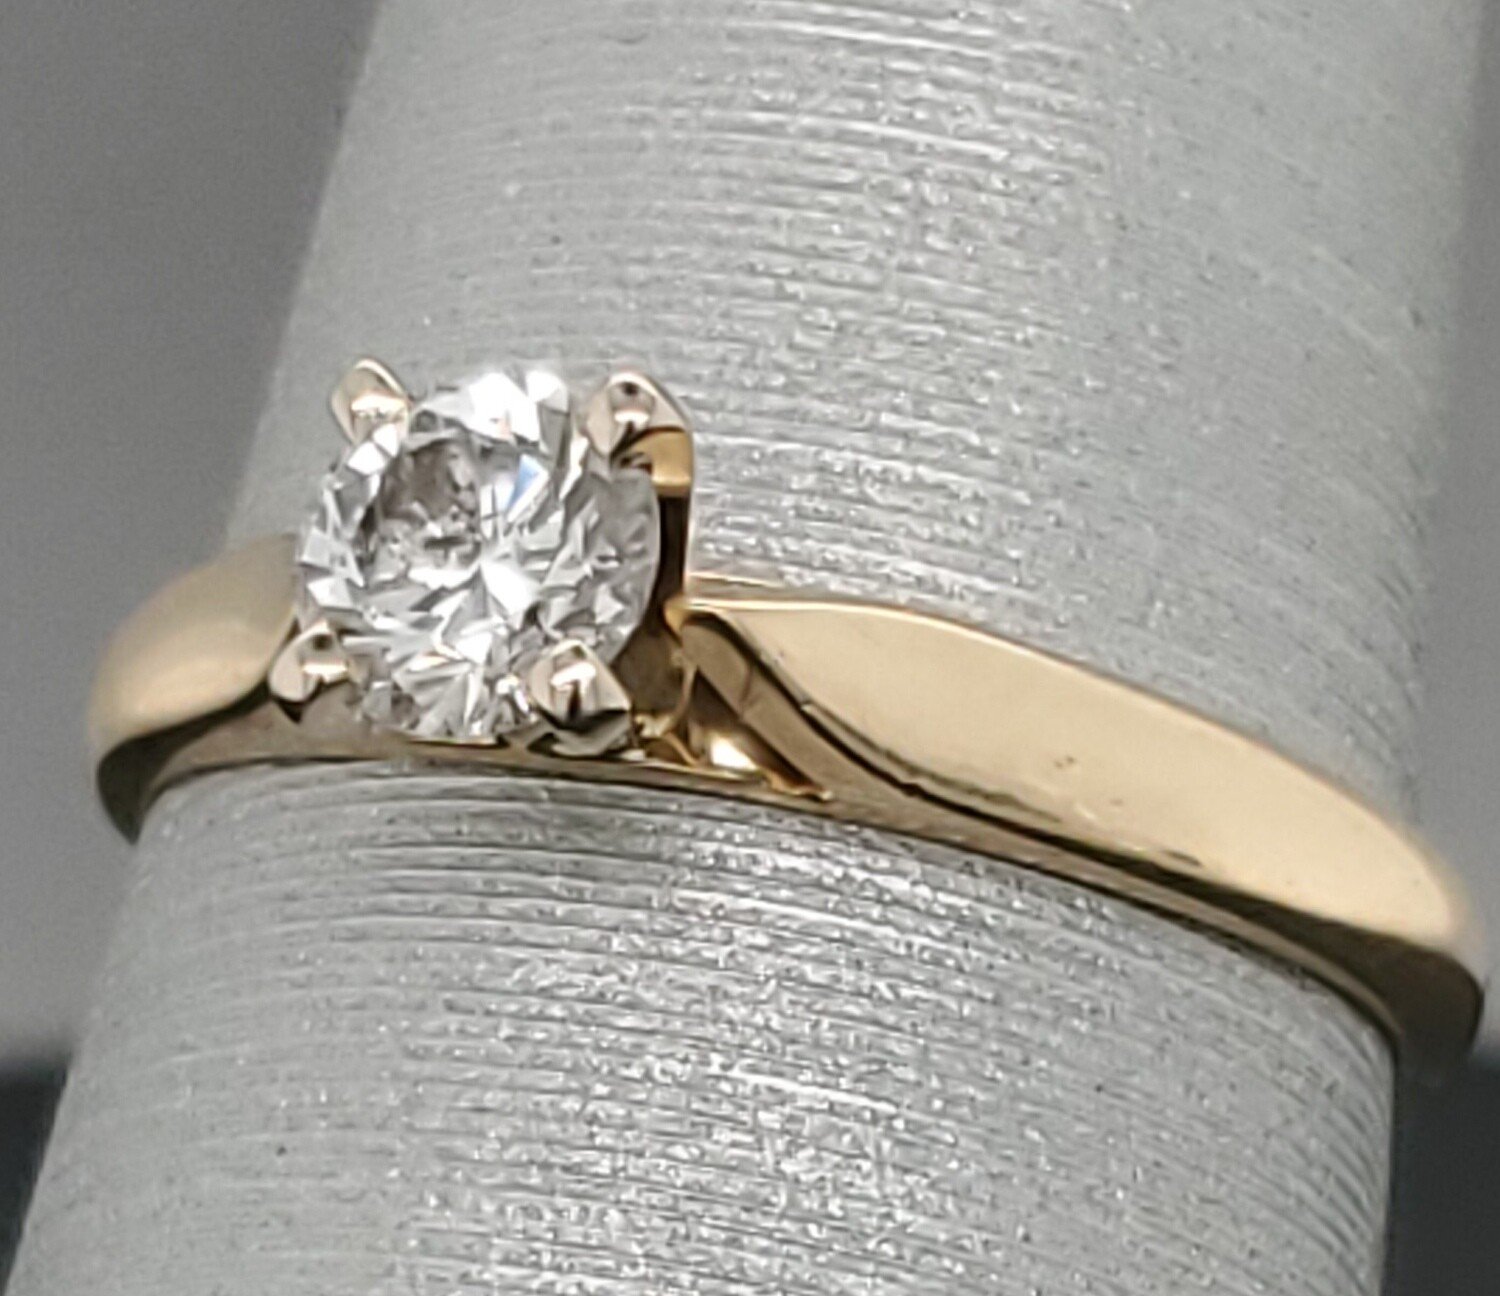 Solitaire Ring14k 880-2103R11sz 6.251.8mm band